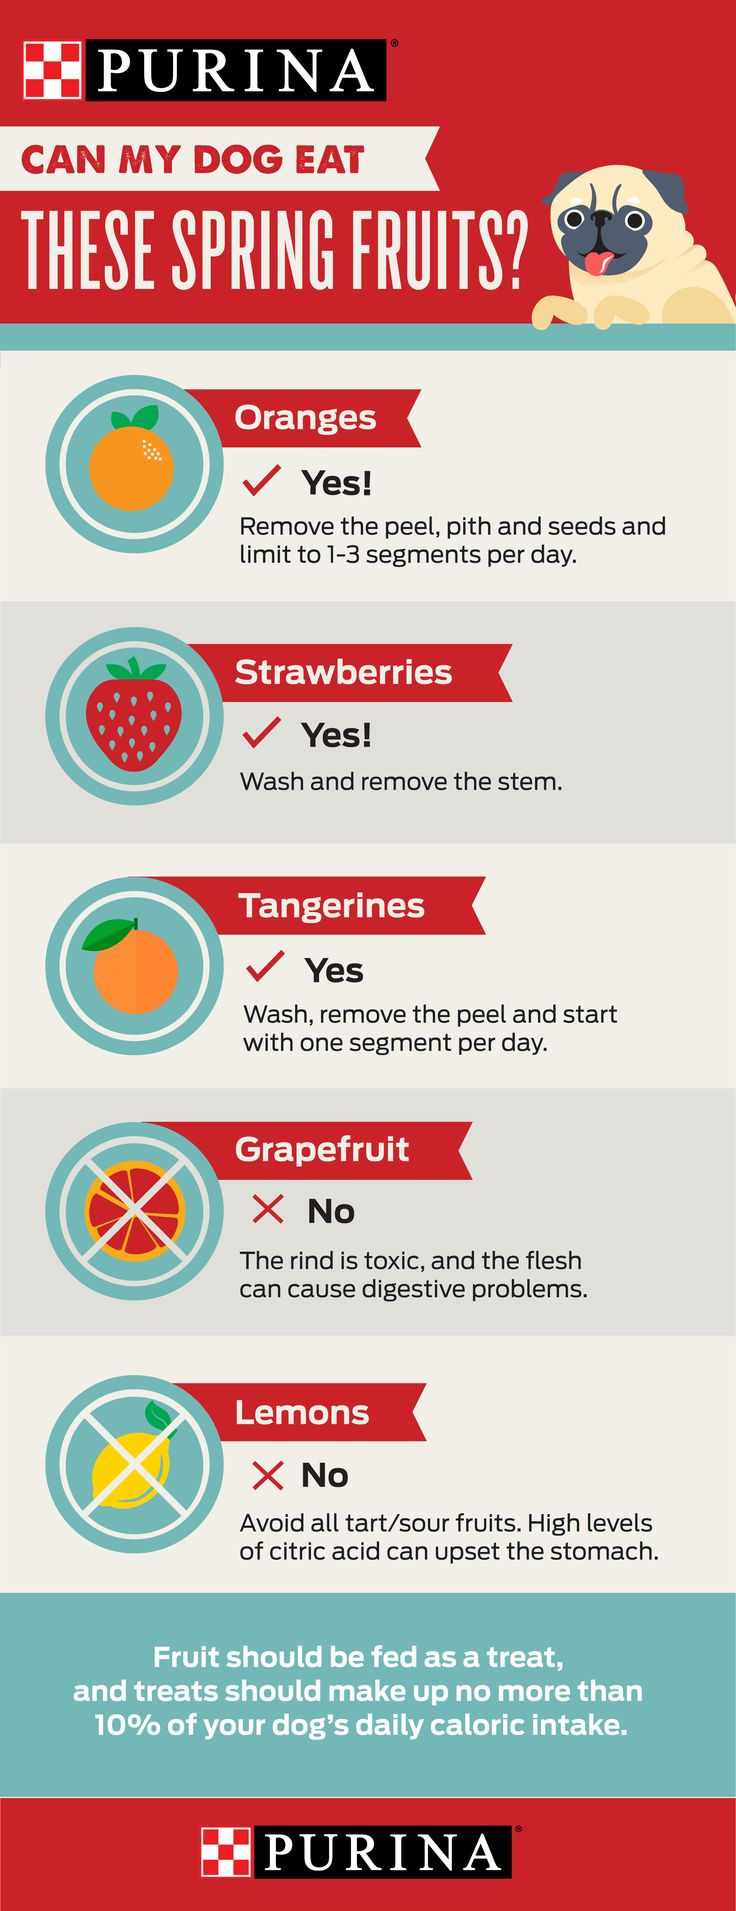 "Can my dog eat fruits and berries? Purina's expert nutritionist shares safety tips on feeding popular spring fruits to pets. ""Strawberries are good for dogs. But feed them to your dog like you would any other snack. Treats should make up no more than 10% of his total calories for the day,"" Purina Nutritionist, Jan Dempsey says. Use this handy ""pinfographic"" as a guide and visit Purina.com to learn how other fruits like oranges and tangerines can impact your pet's health."